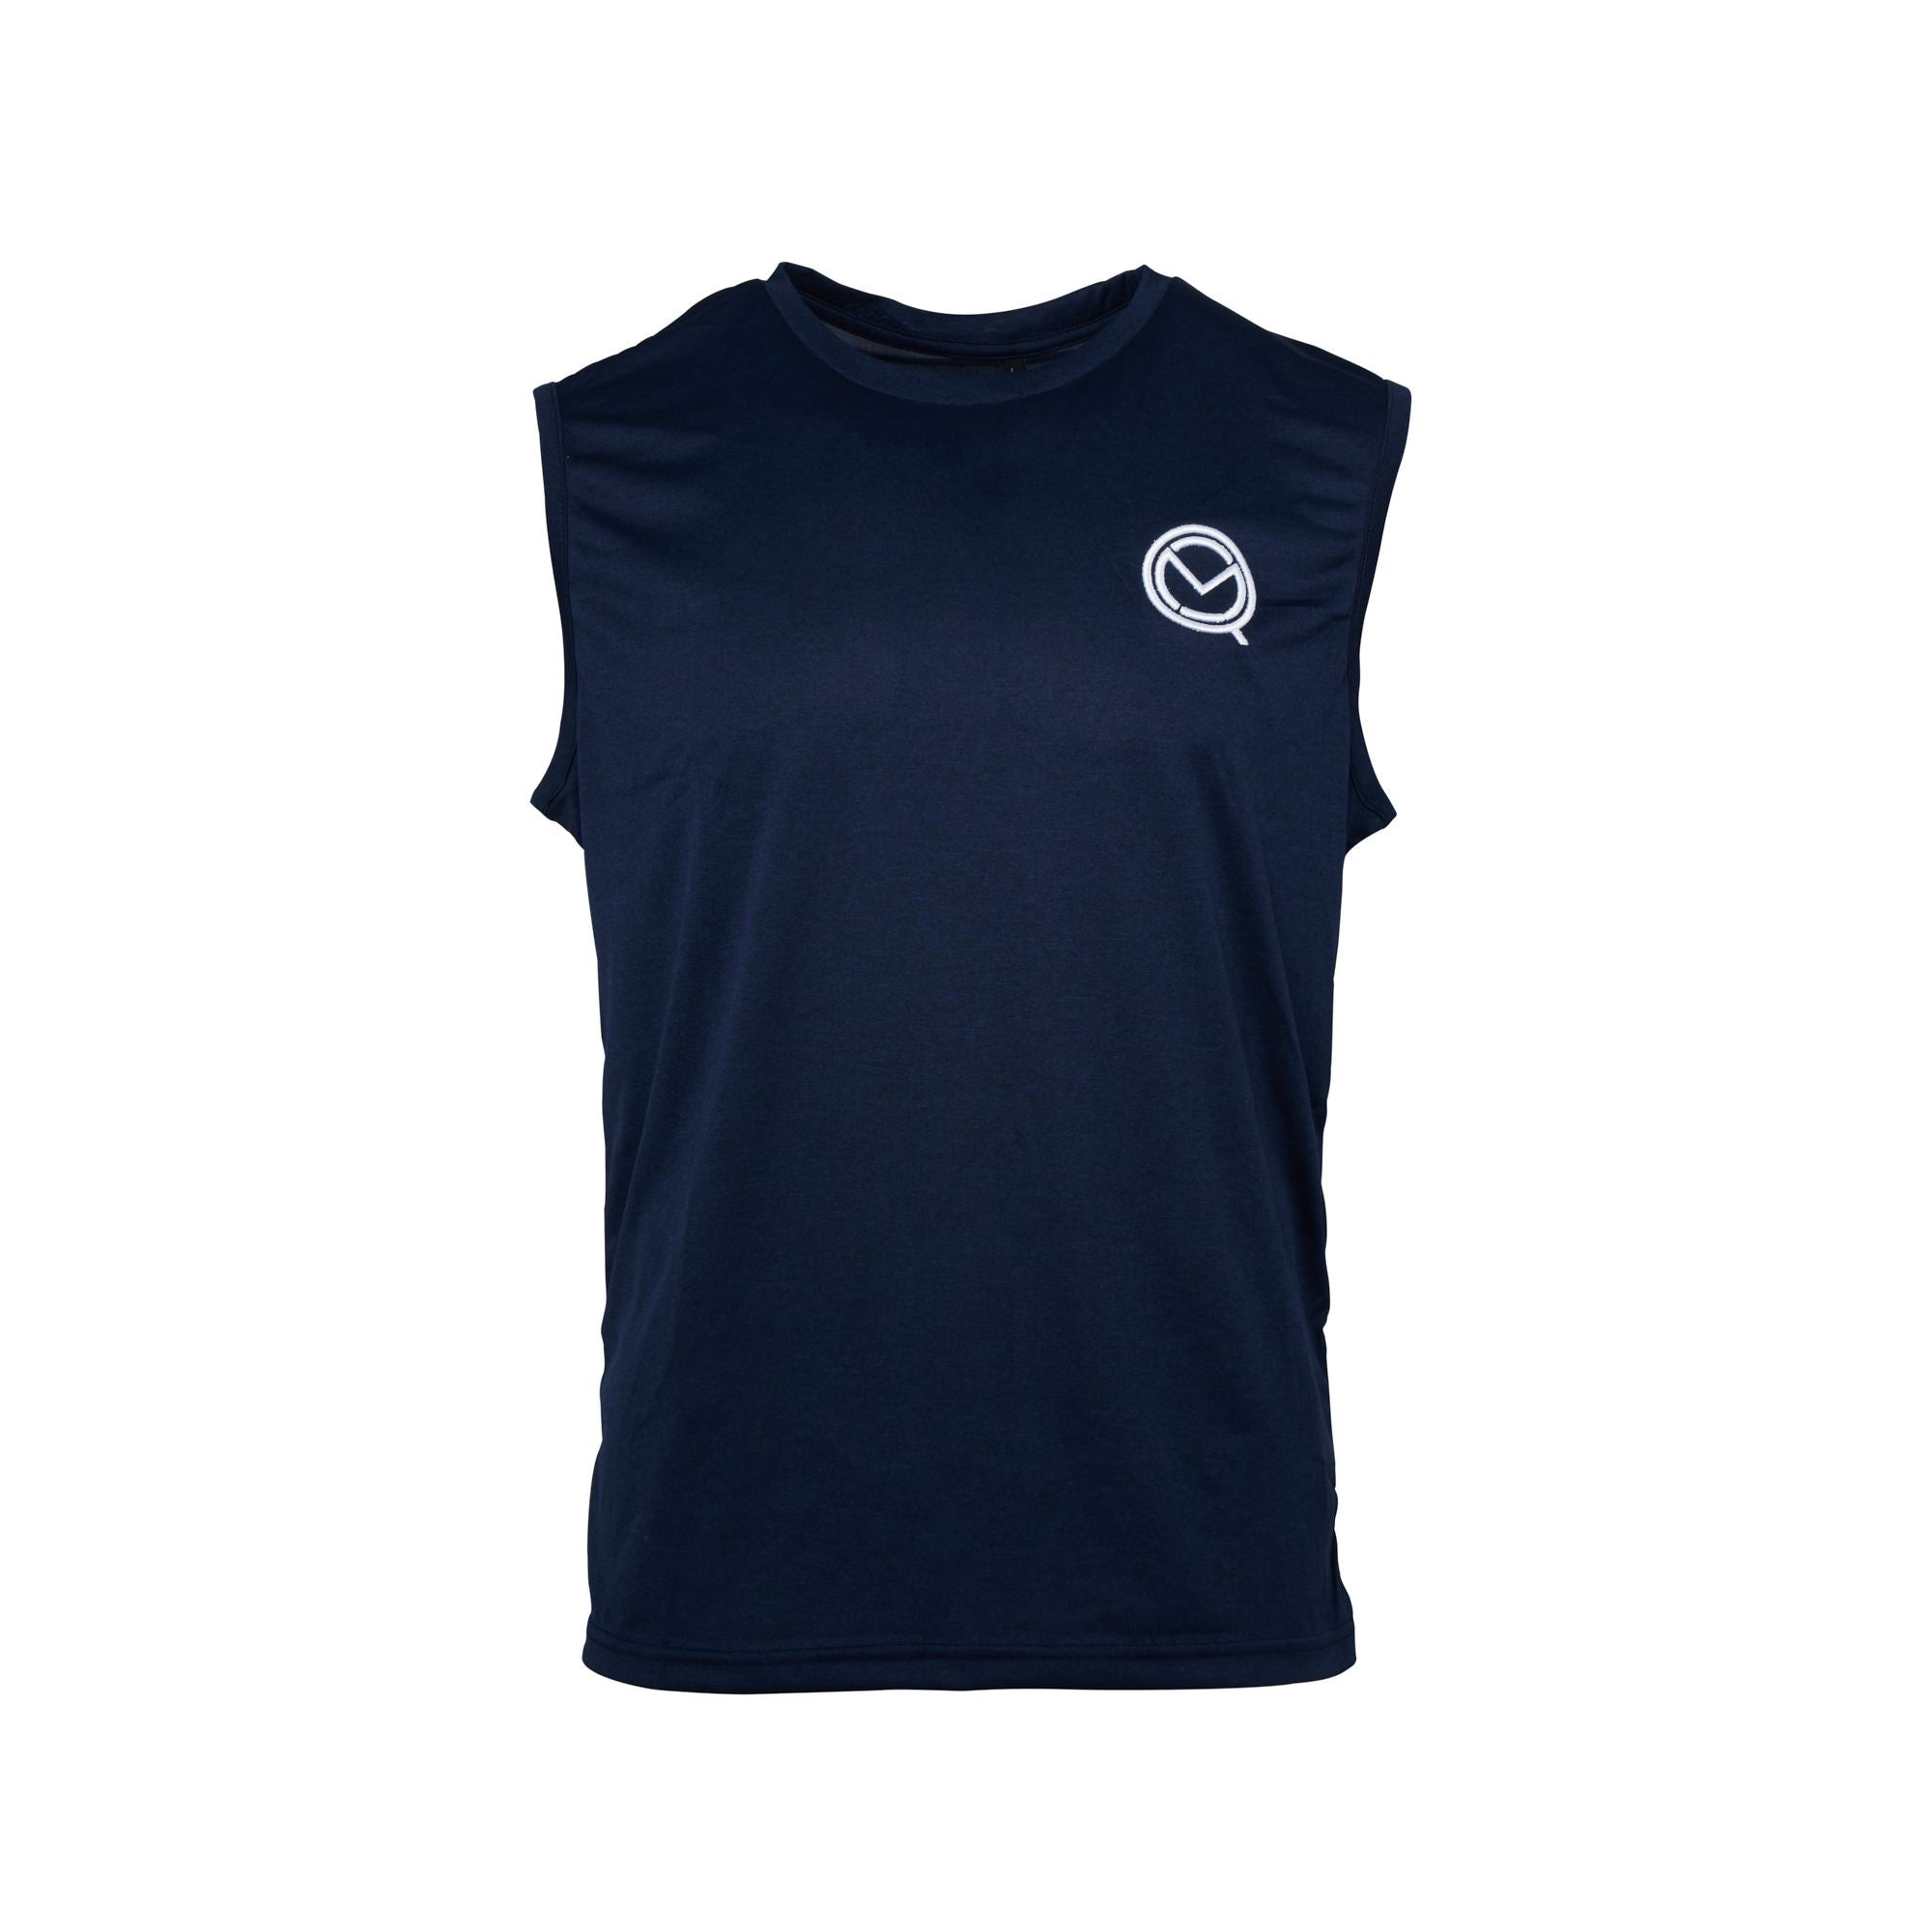 Men's Navy Fight Life Tank vest Top - MOQ boxing